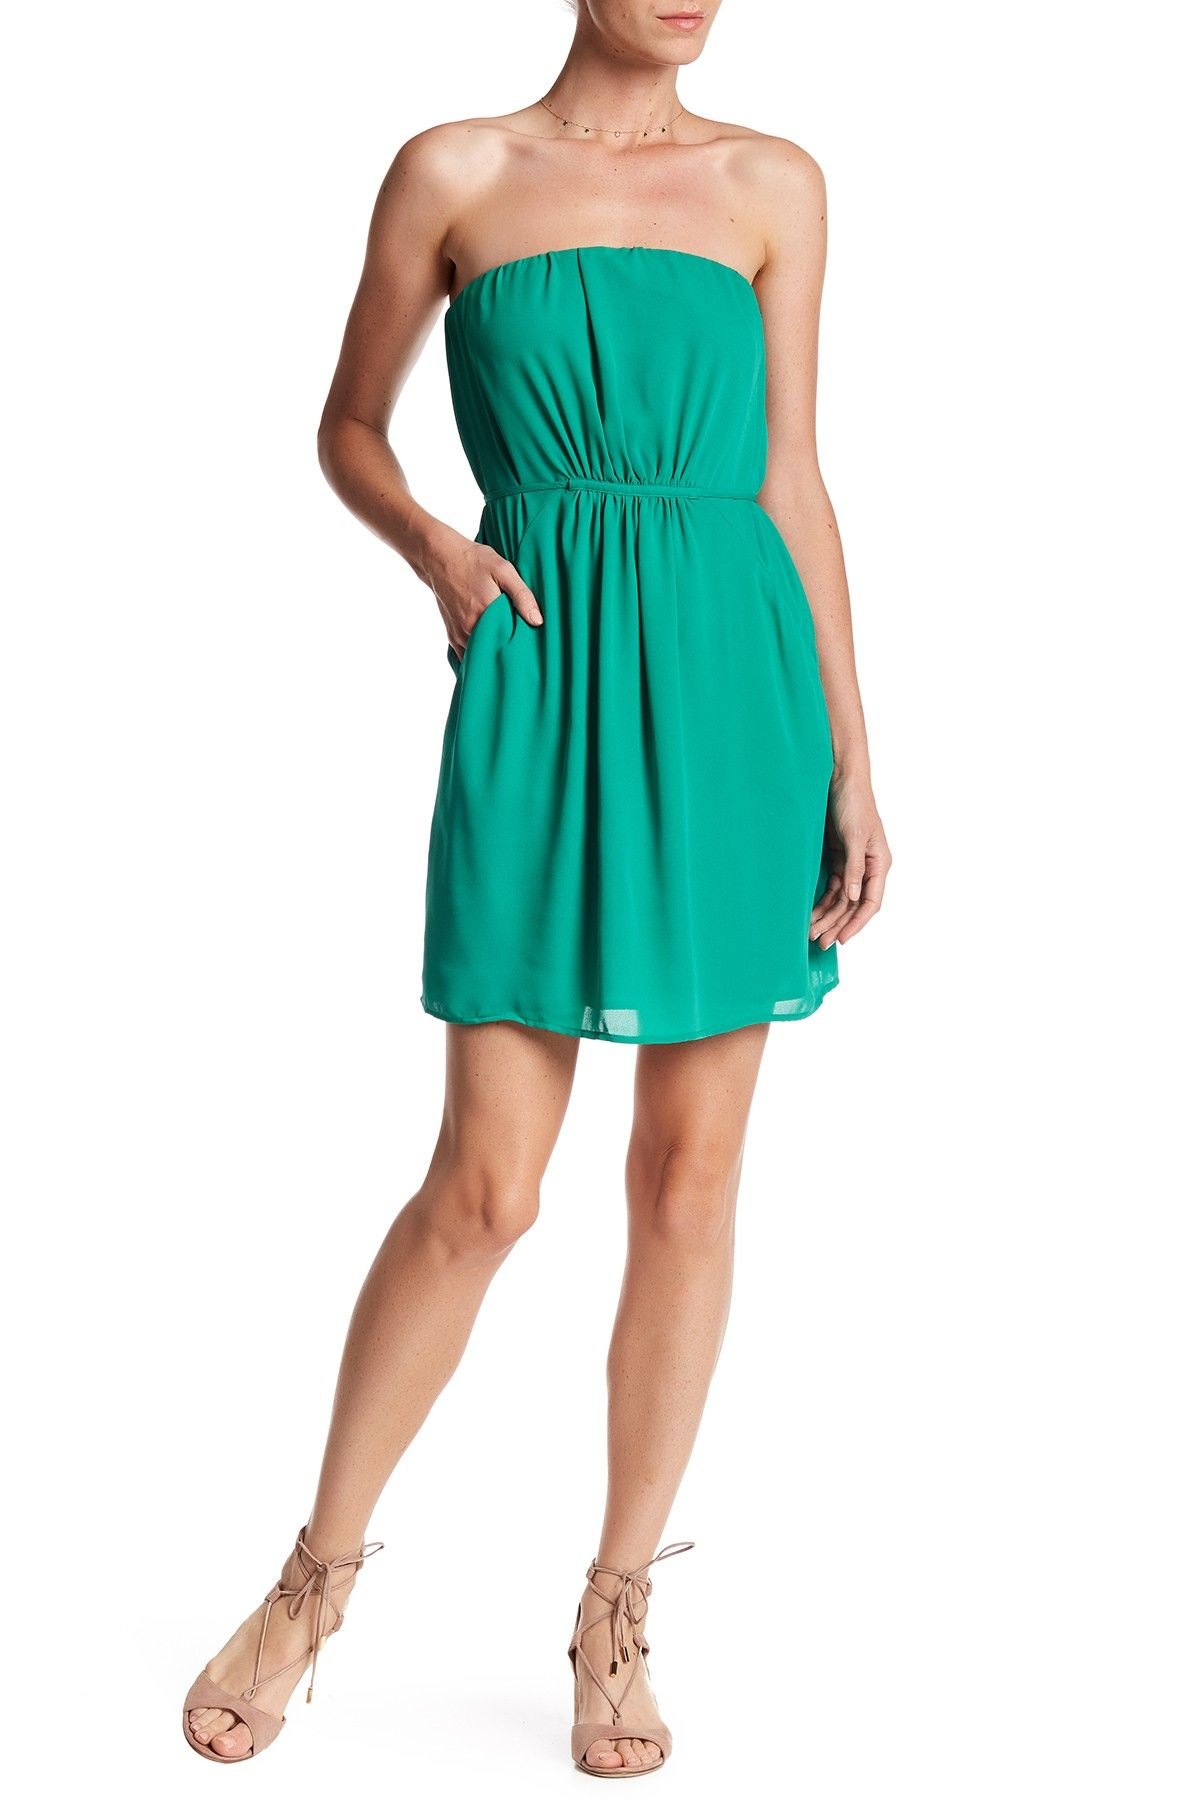 Collective concepts strapless dress strapless dress and products